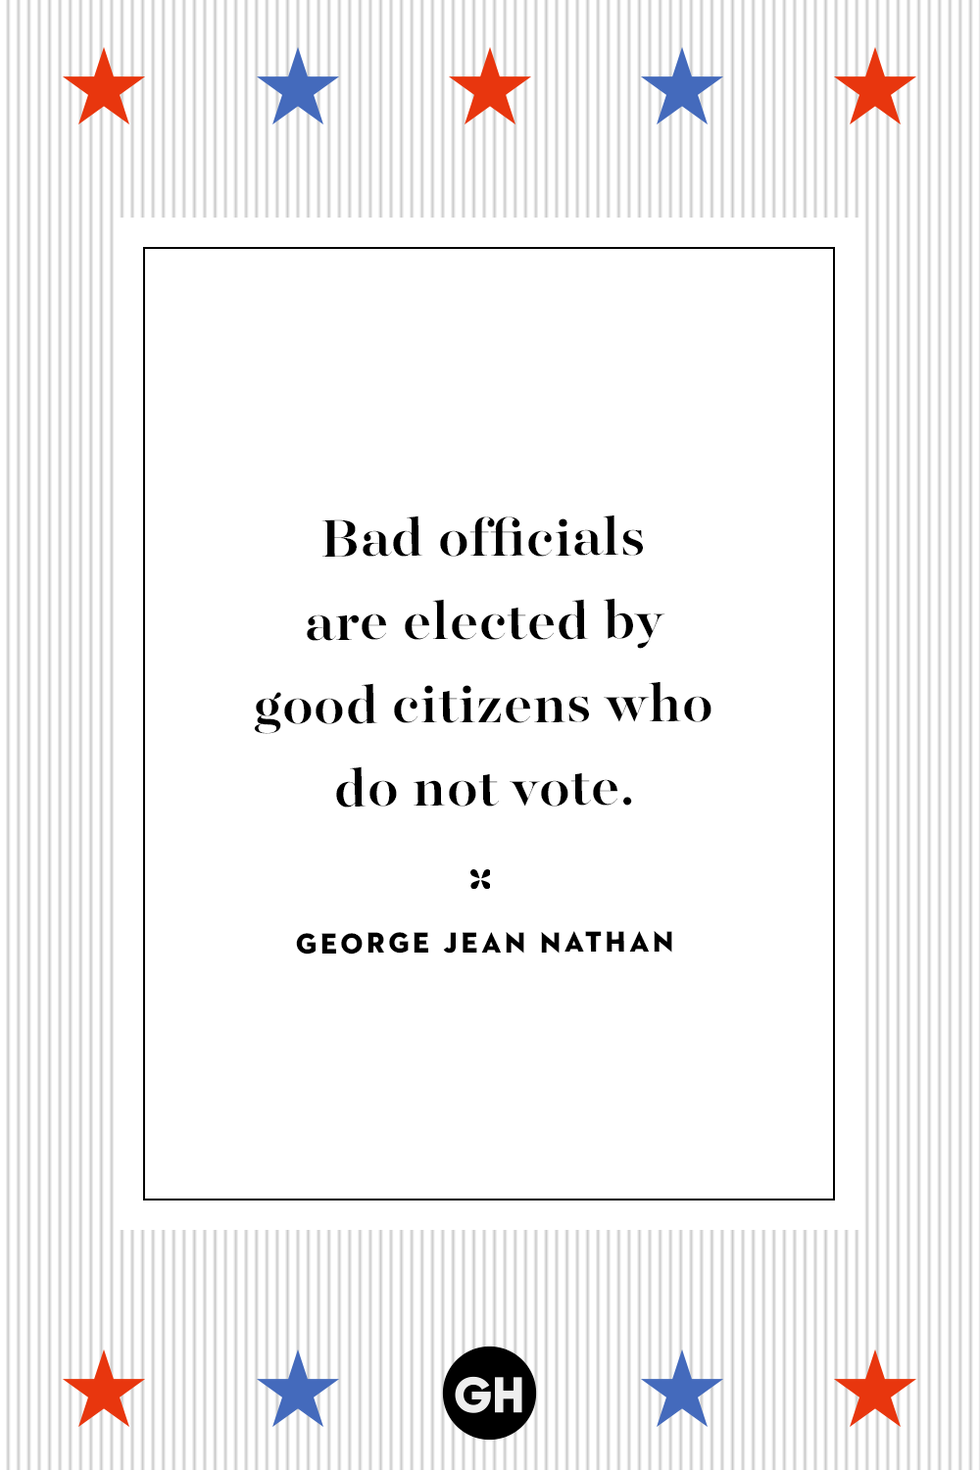 election-quotes-voting-quotes-09-george-jean-nathan-1567019362